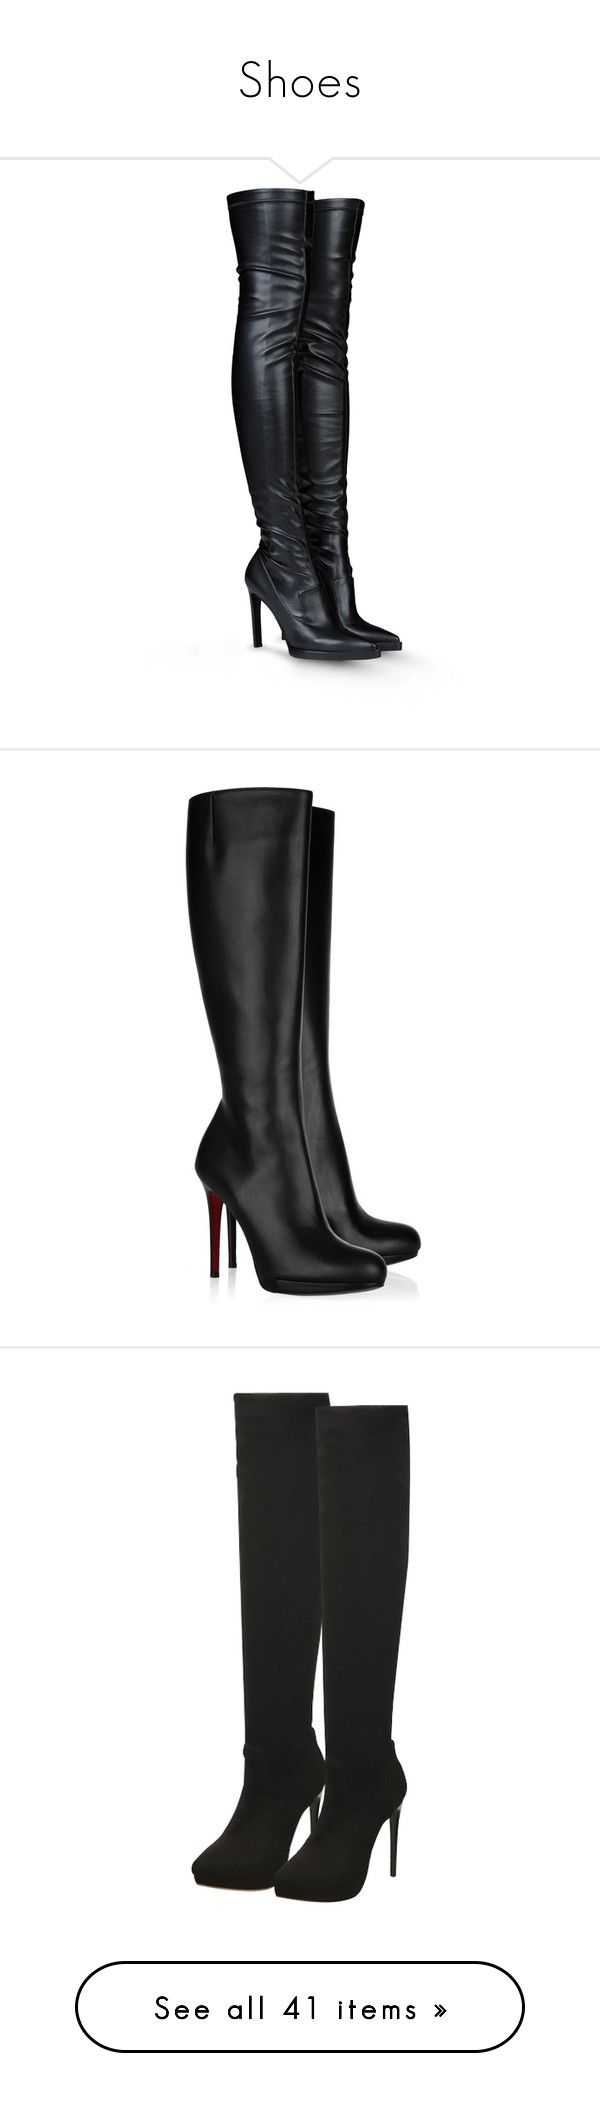 """""""Shoes"""" by maryemmanuel on Polyvore featuring shoes, boots, heels, botas, stella mccartney, black, over the knee high heel boots, high heel loafers, black heeled boots and black leather boots"""